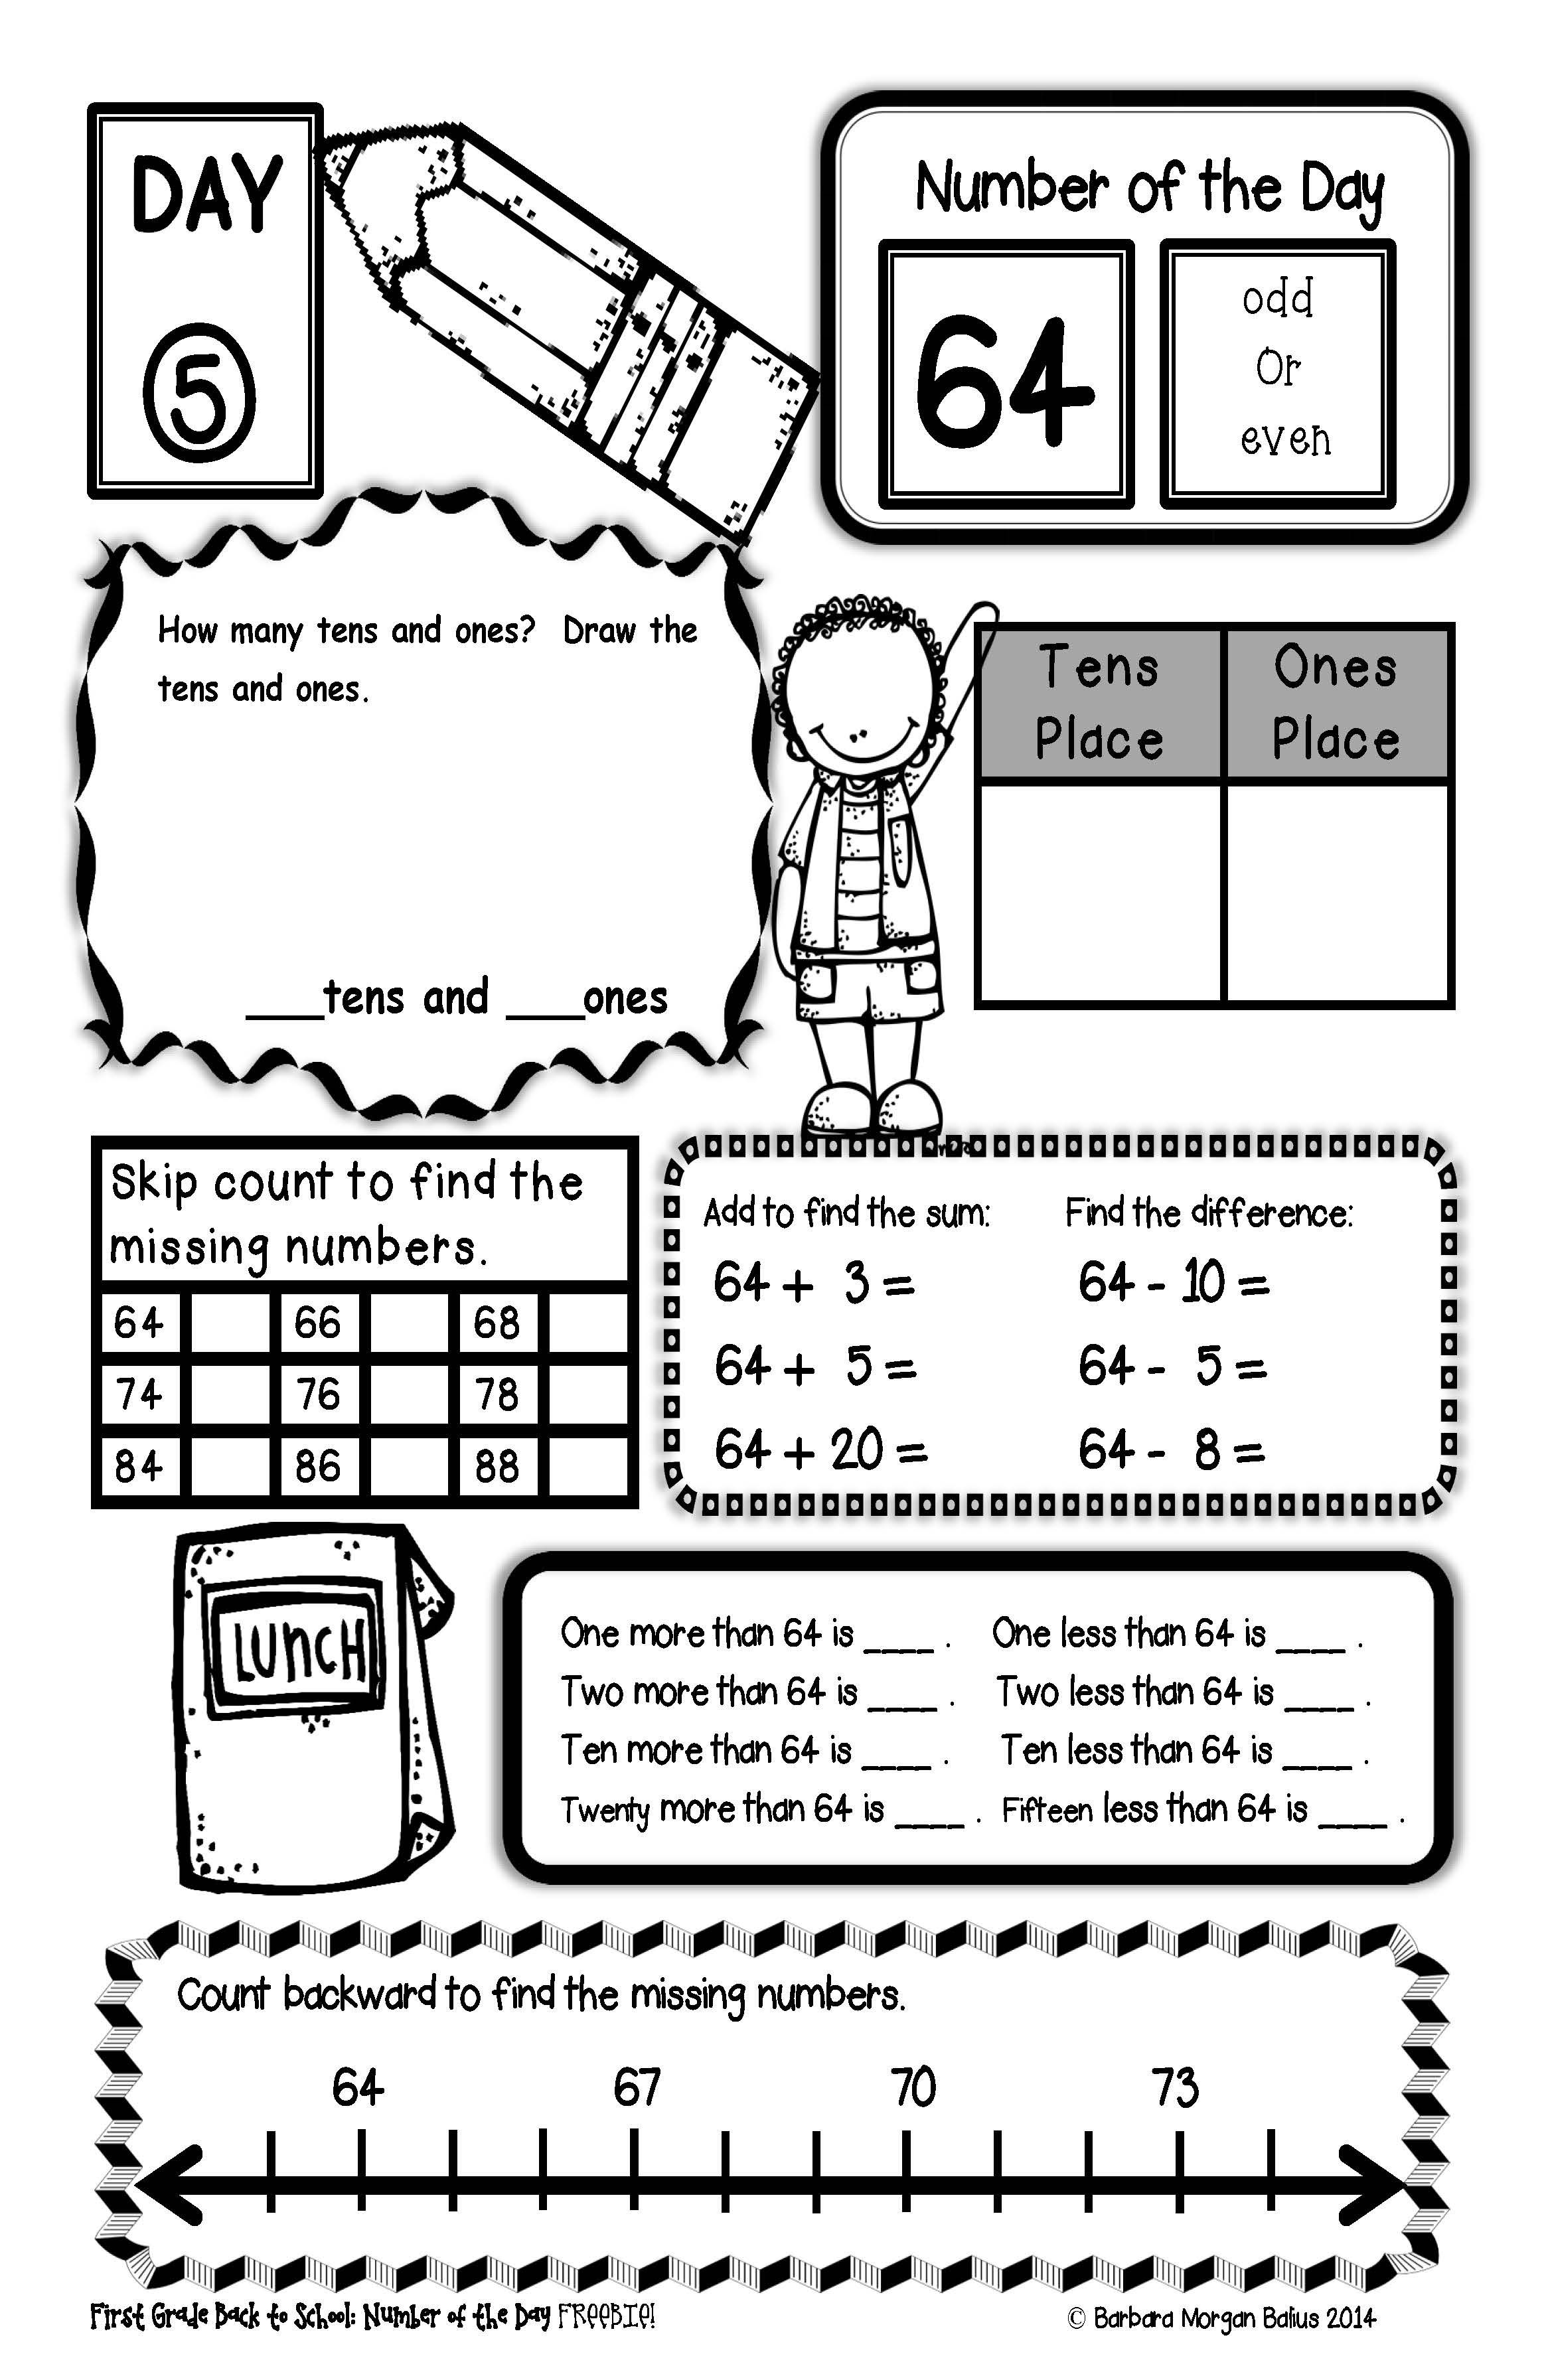 Calendar Activities For 2nd Grade : Second grade back to school number of the day freebie all